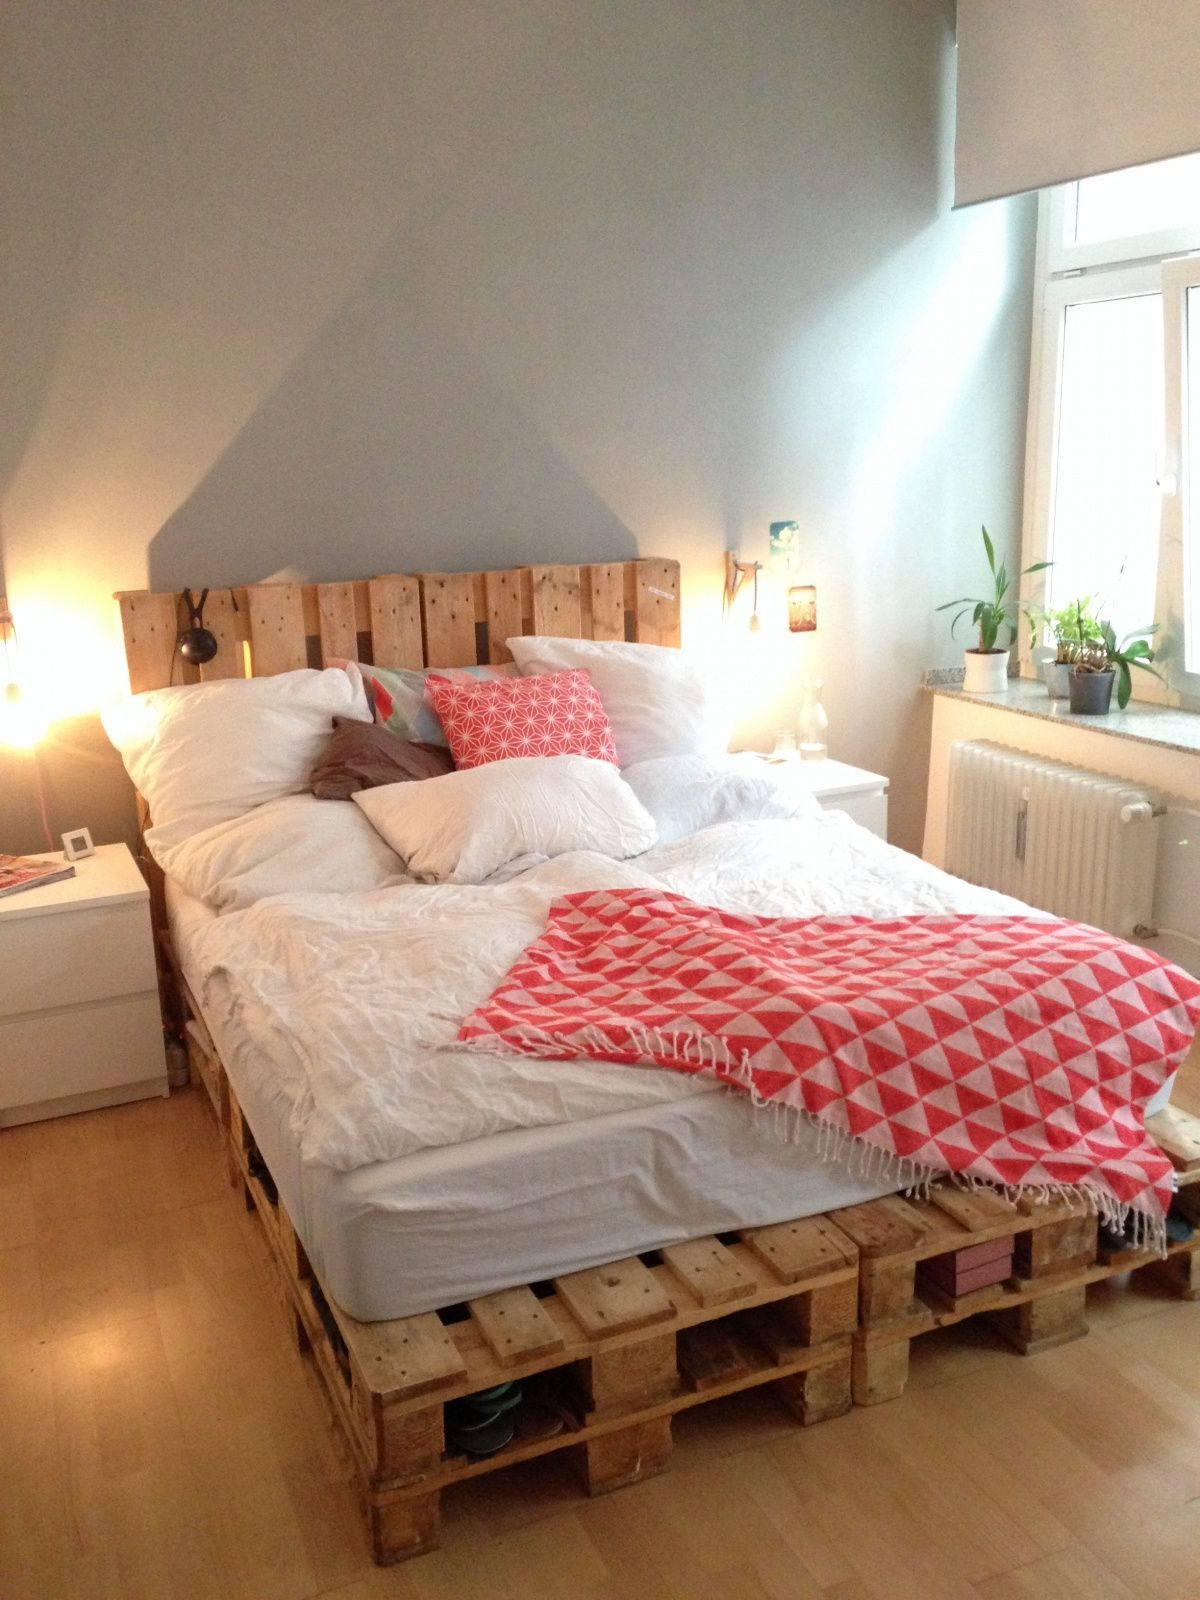 Europaletten Bett Tumblr Palettenbett Zum Träumen Bedroom Ideas In 2019